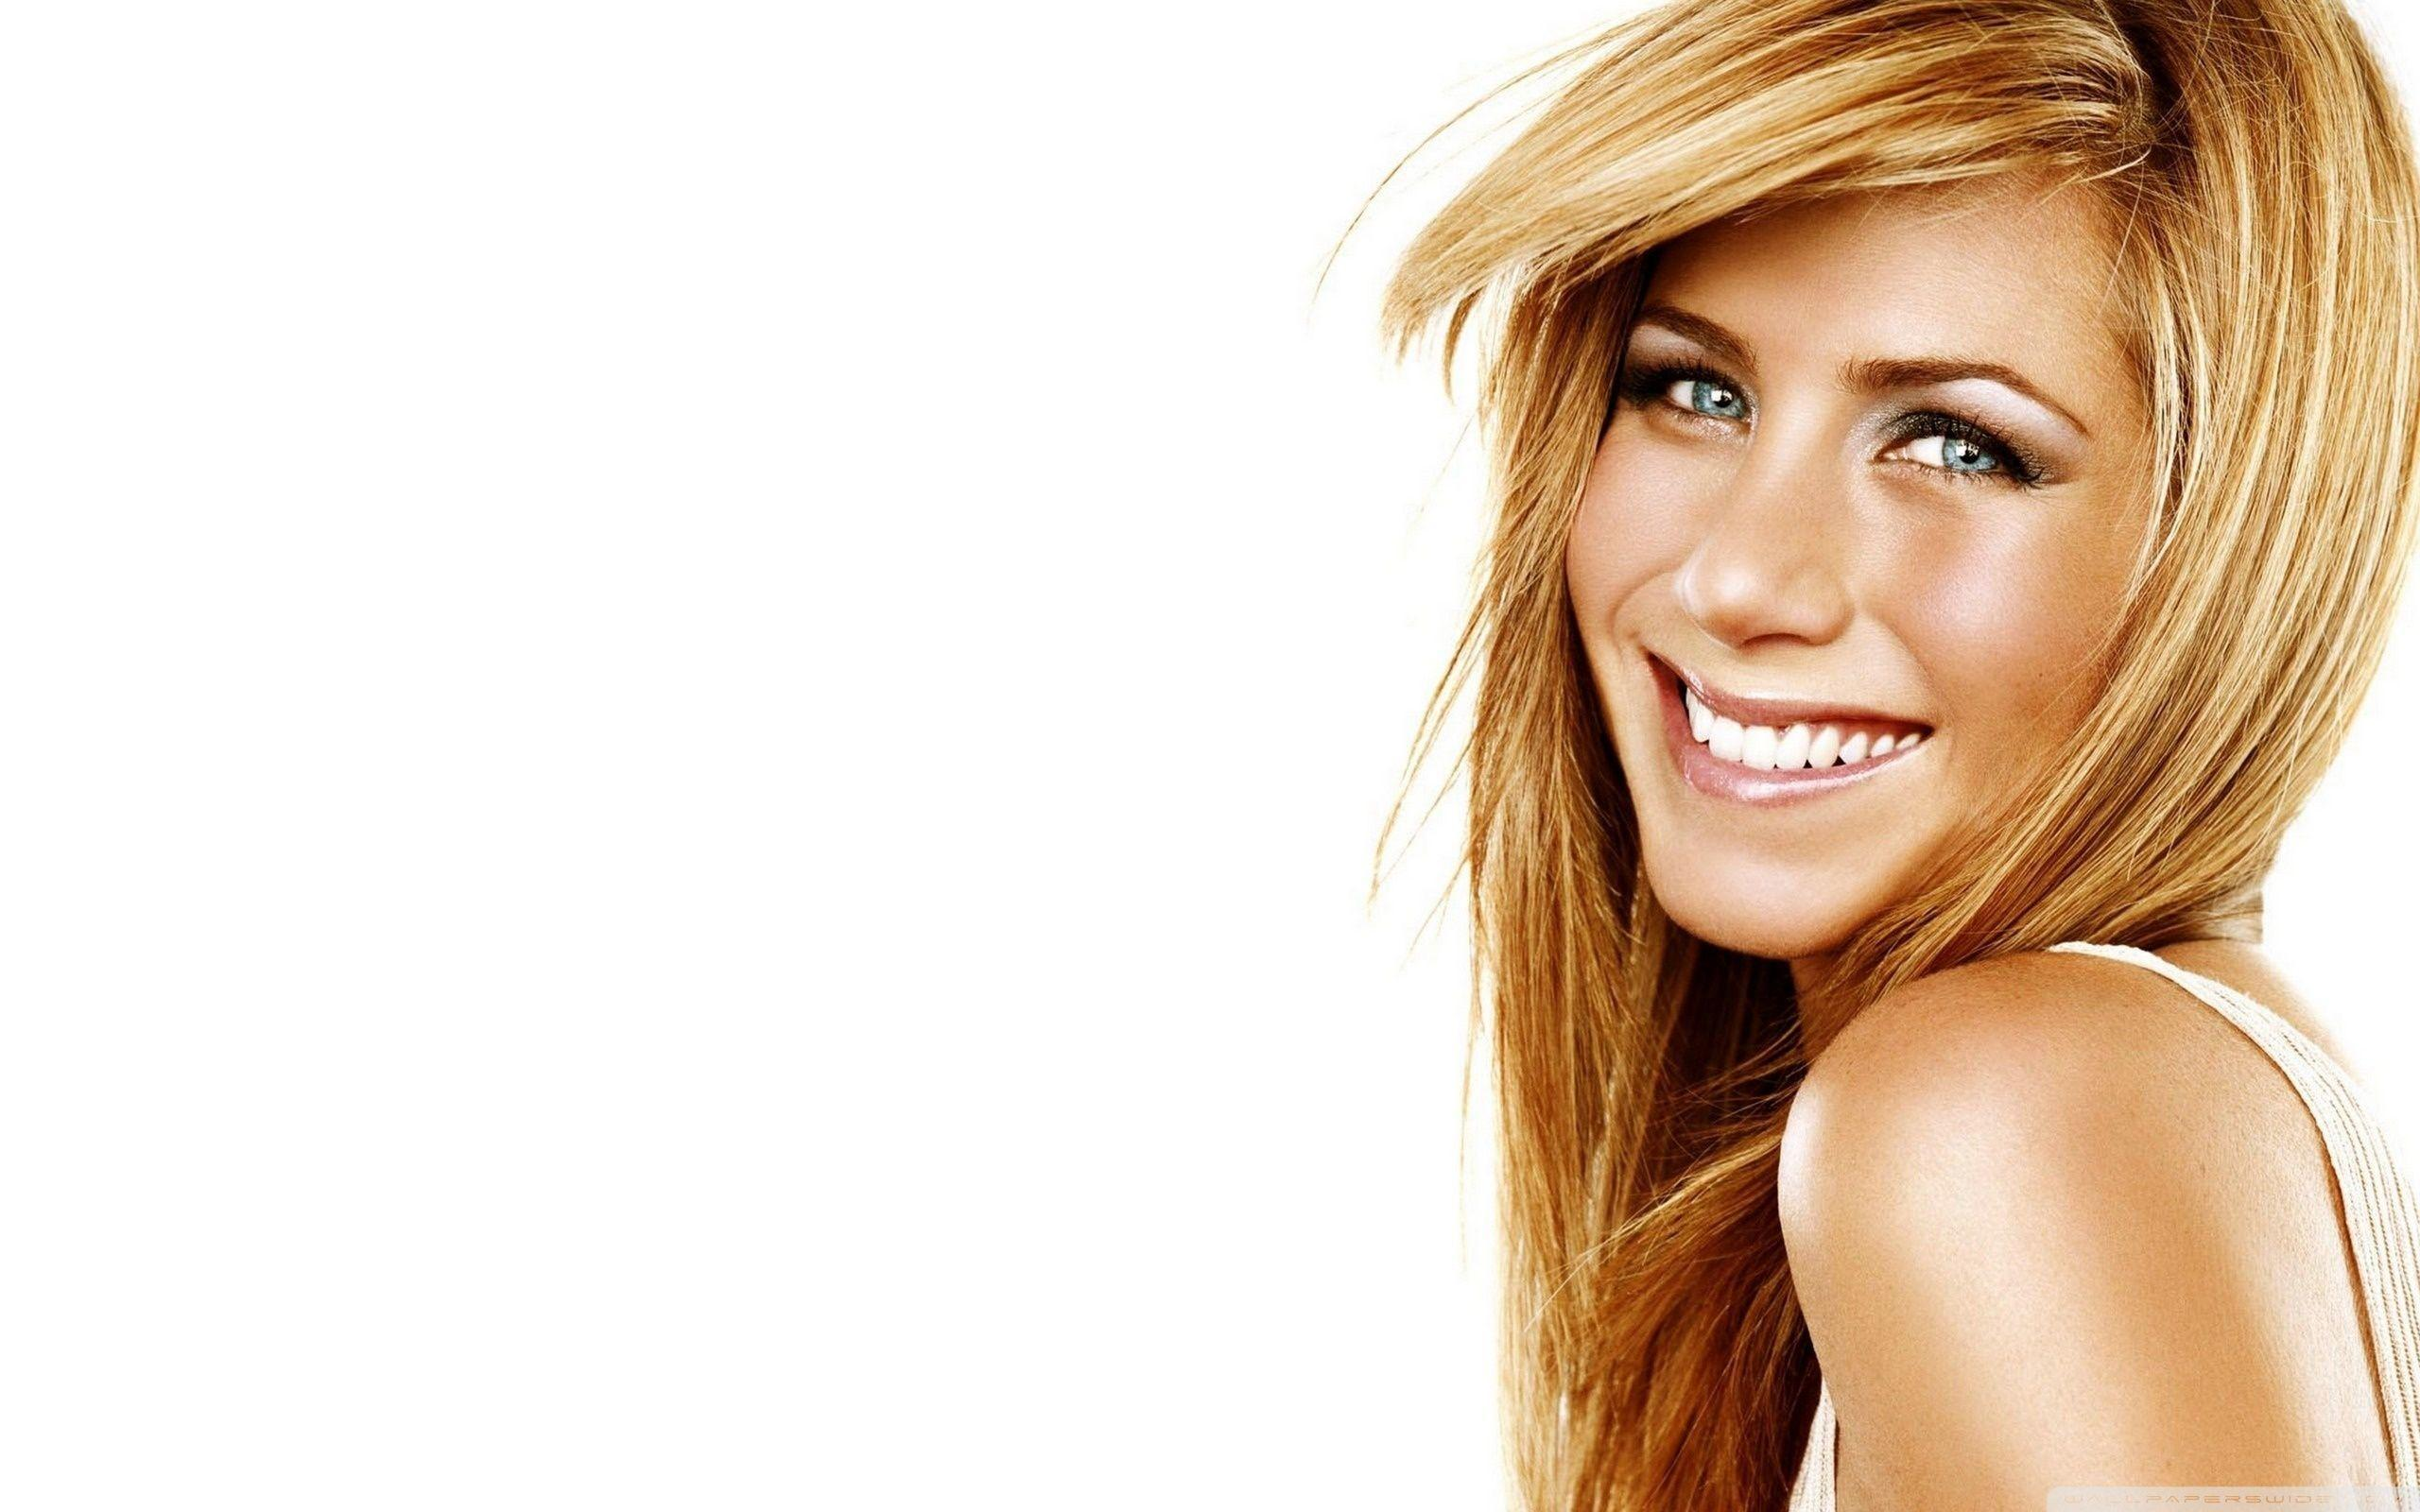 Jennifer Aniston Smiling HD desktop wallpaper : High Definition ...